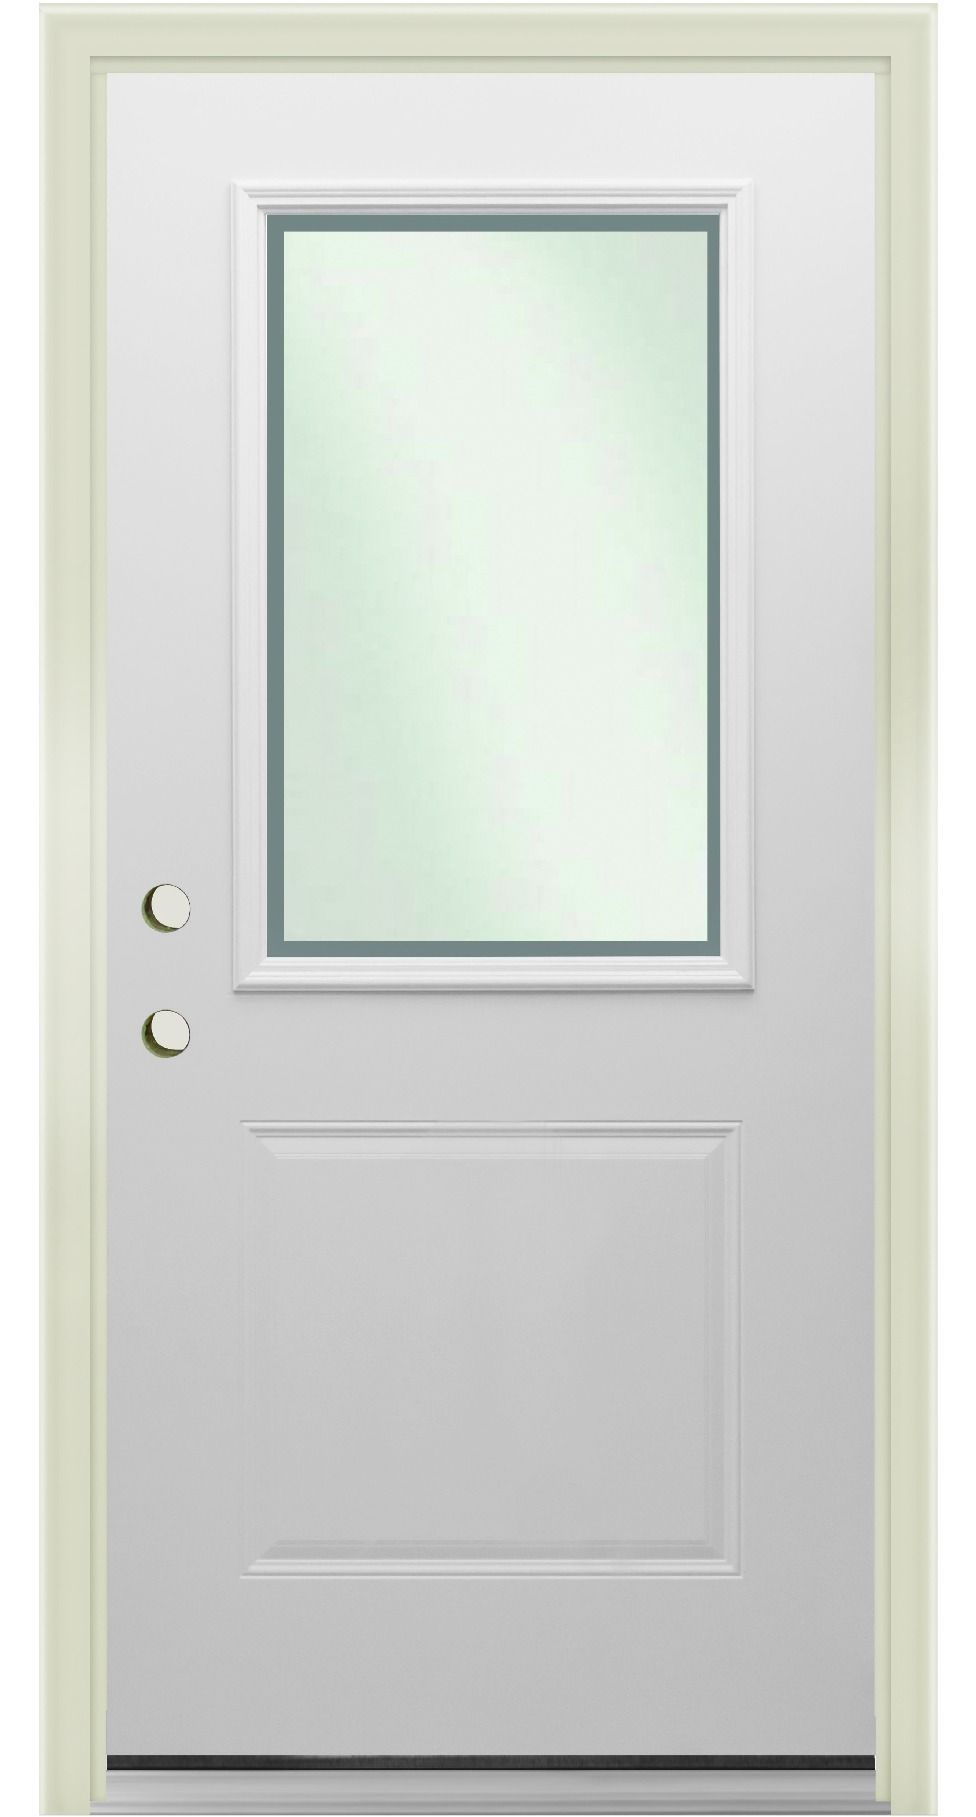 Design Or Buy Your This Door Online At Www Menards Com Doorstore